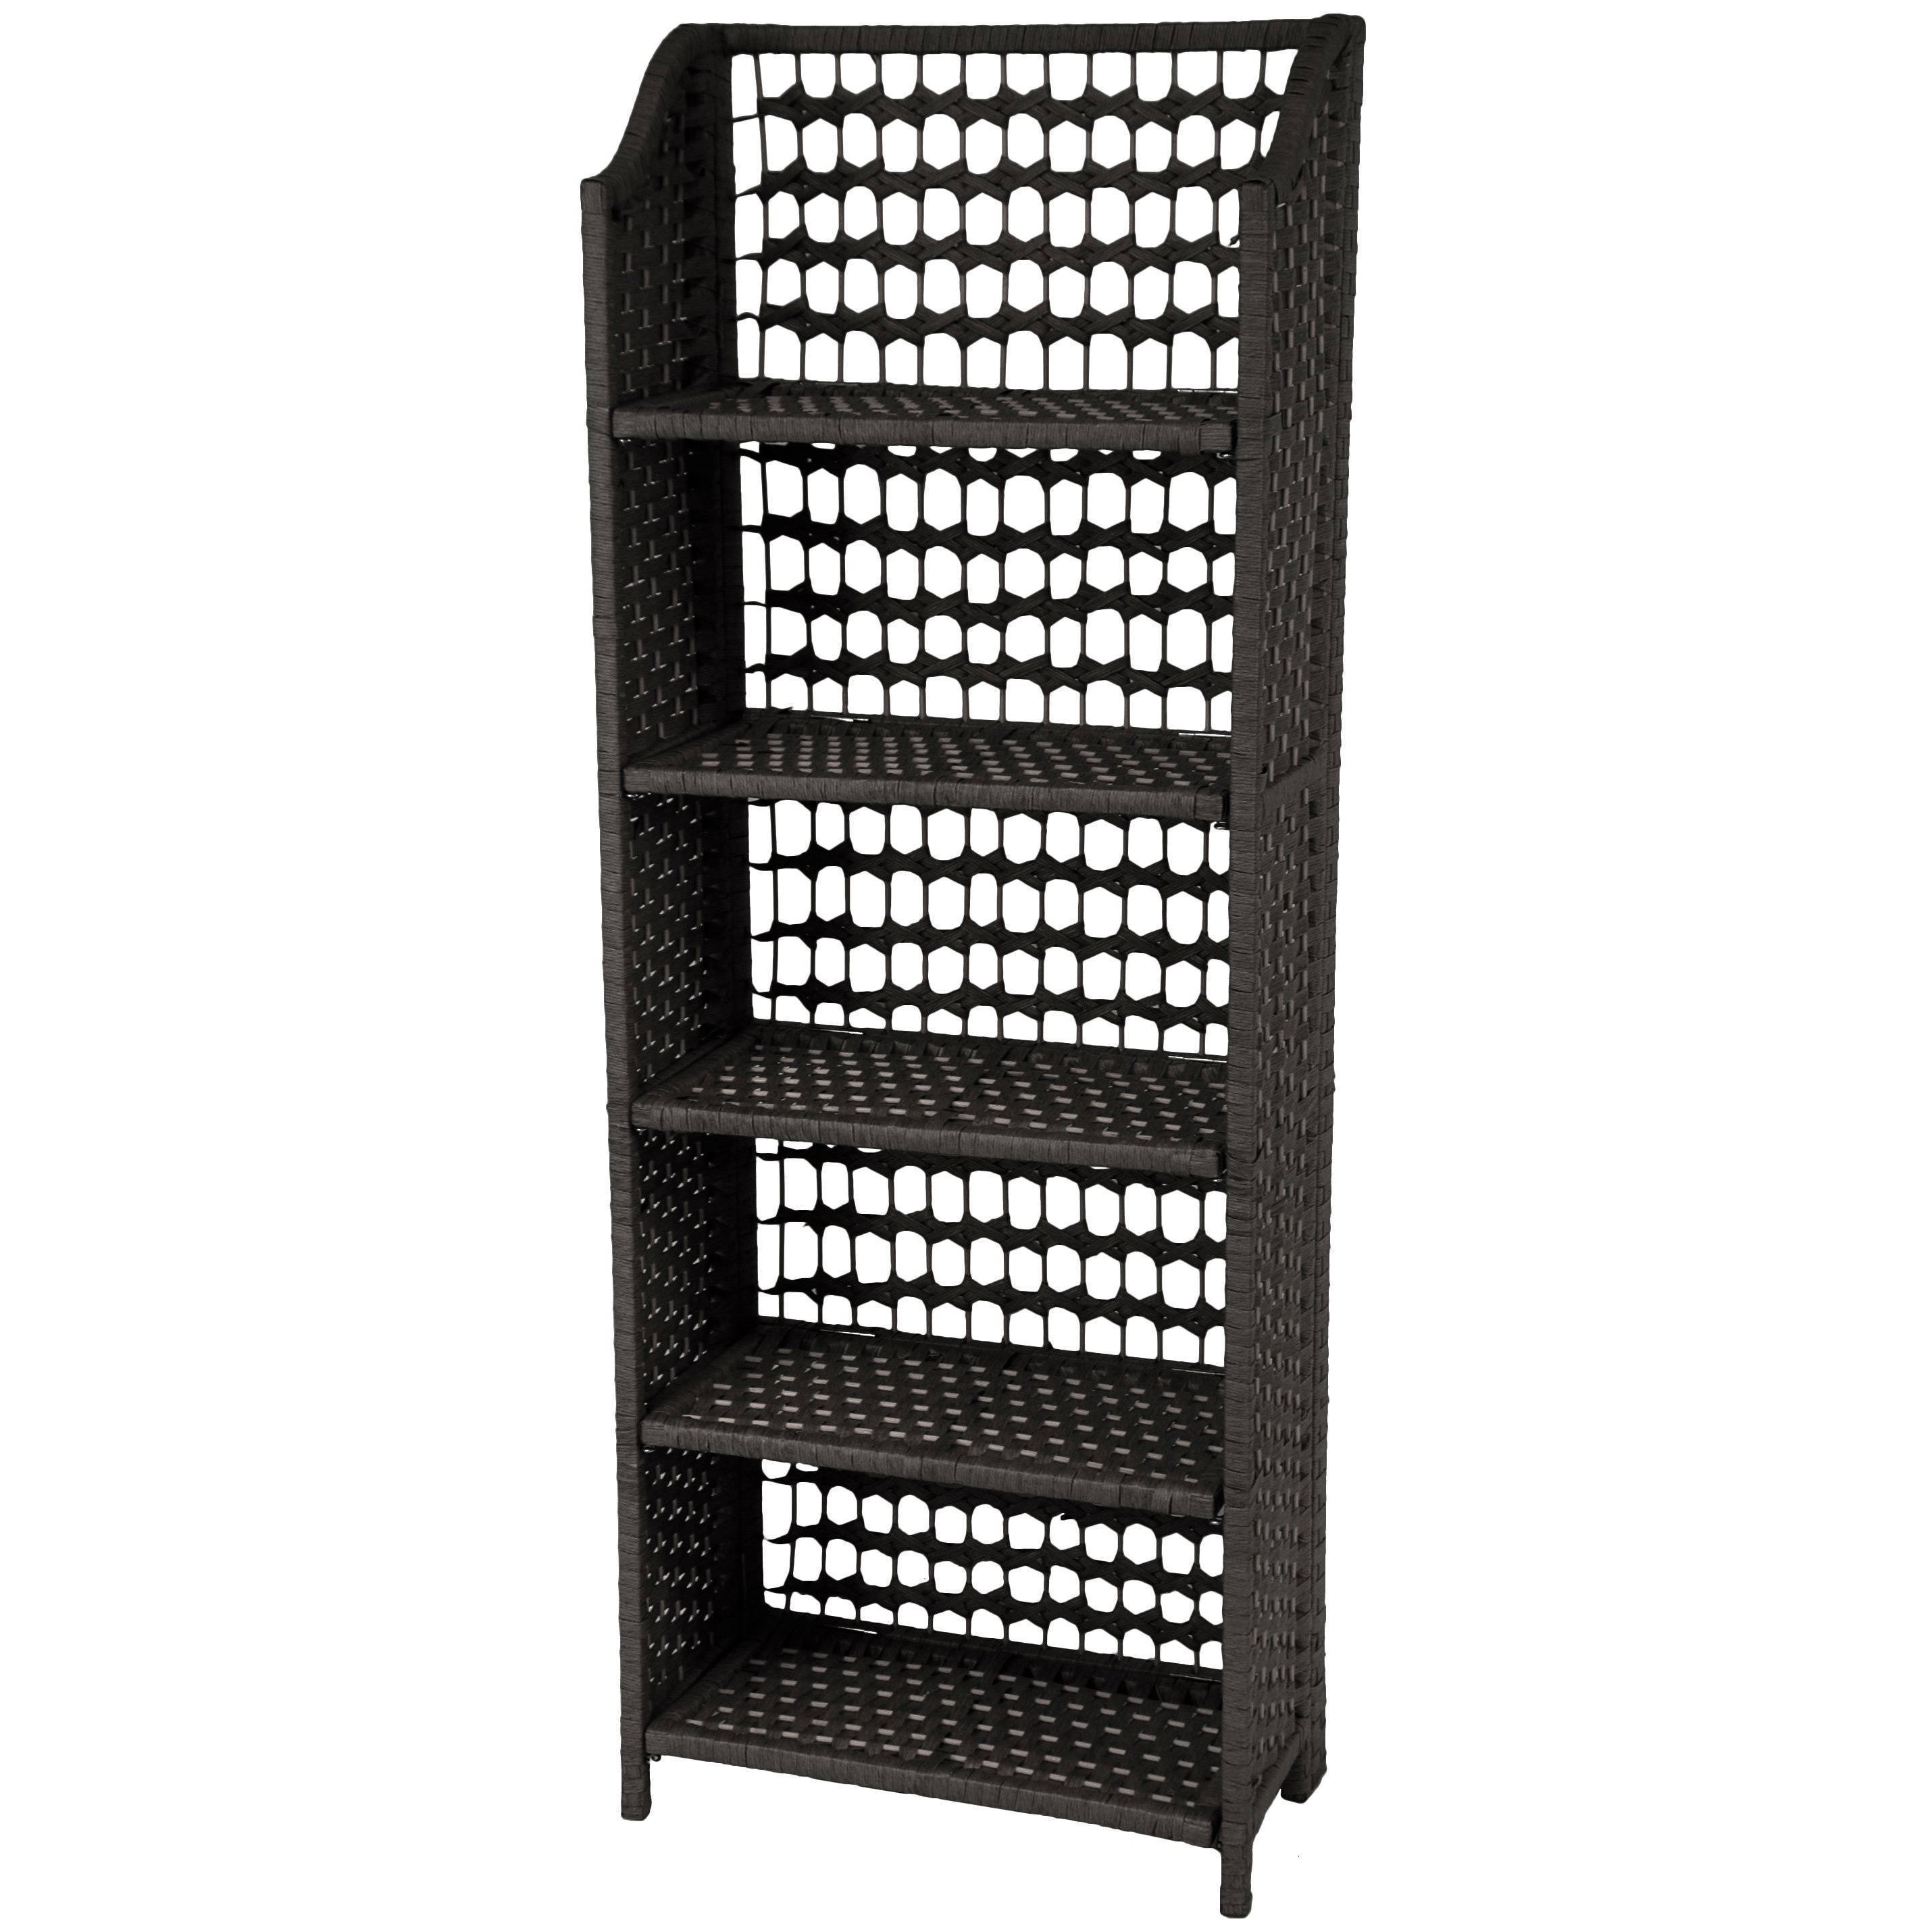 used wardrobe collapsible style display full size inspirations craft combo rack shelvesible shelves for photos shoe of show walmart shows walmartt urban